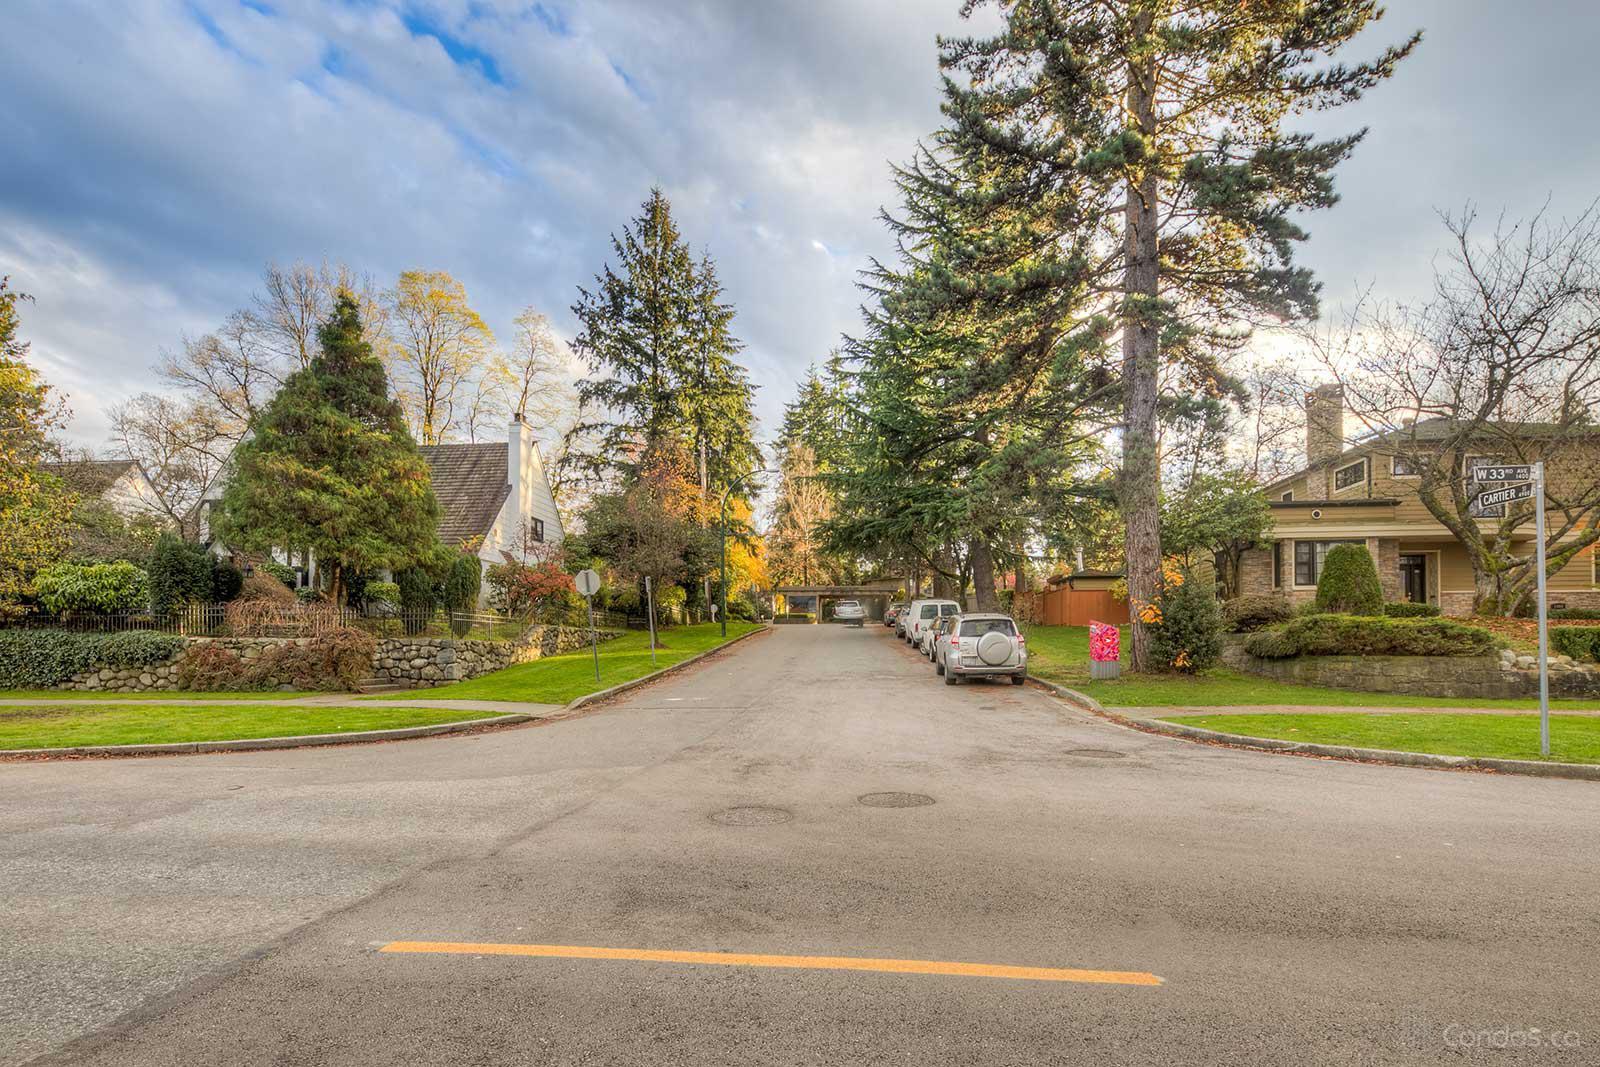 Shaughnessy Place at 4900 Cartier St, Vancouver 0